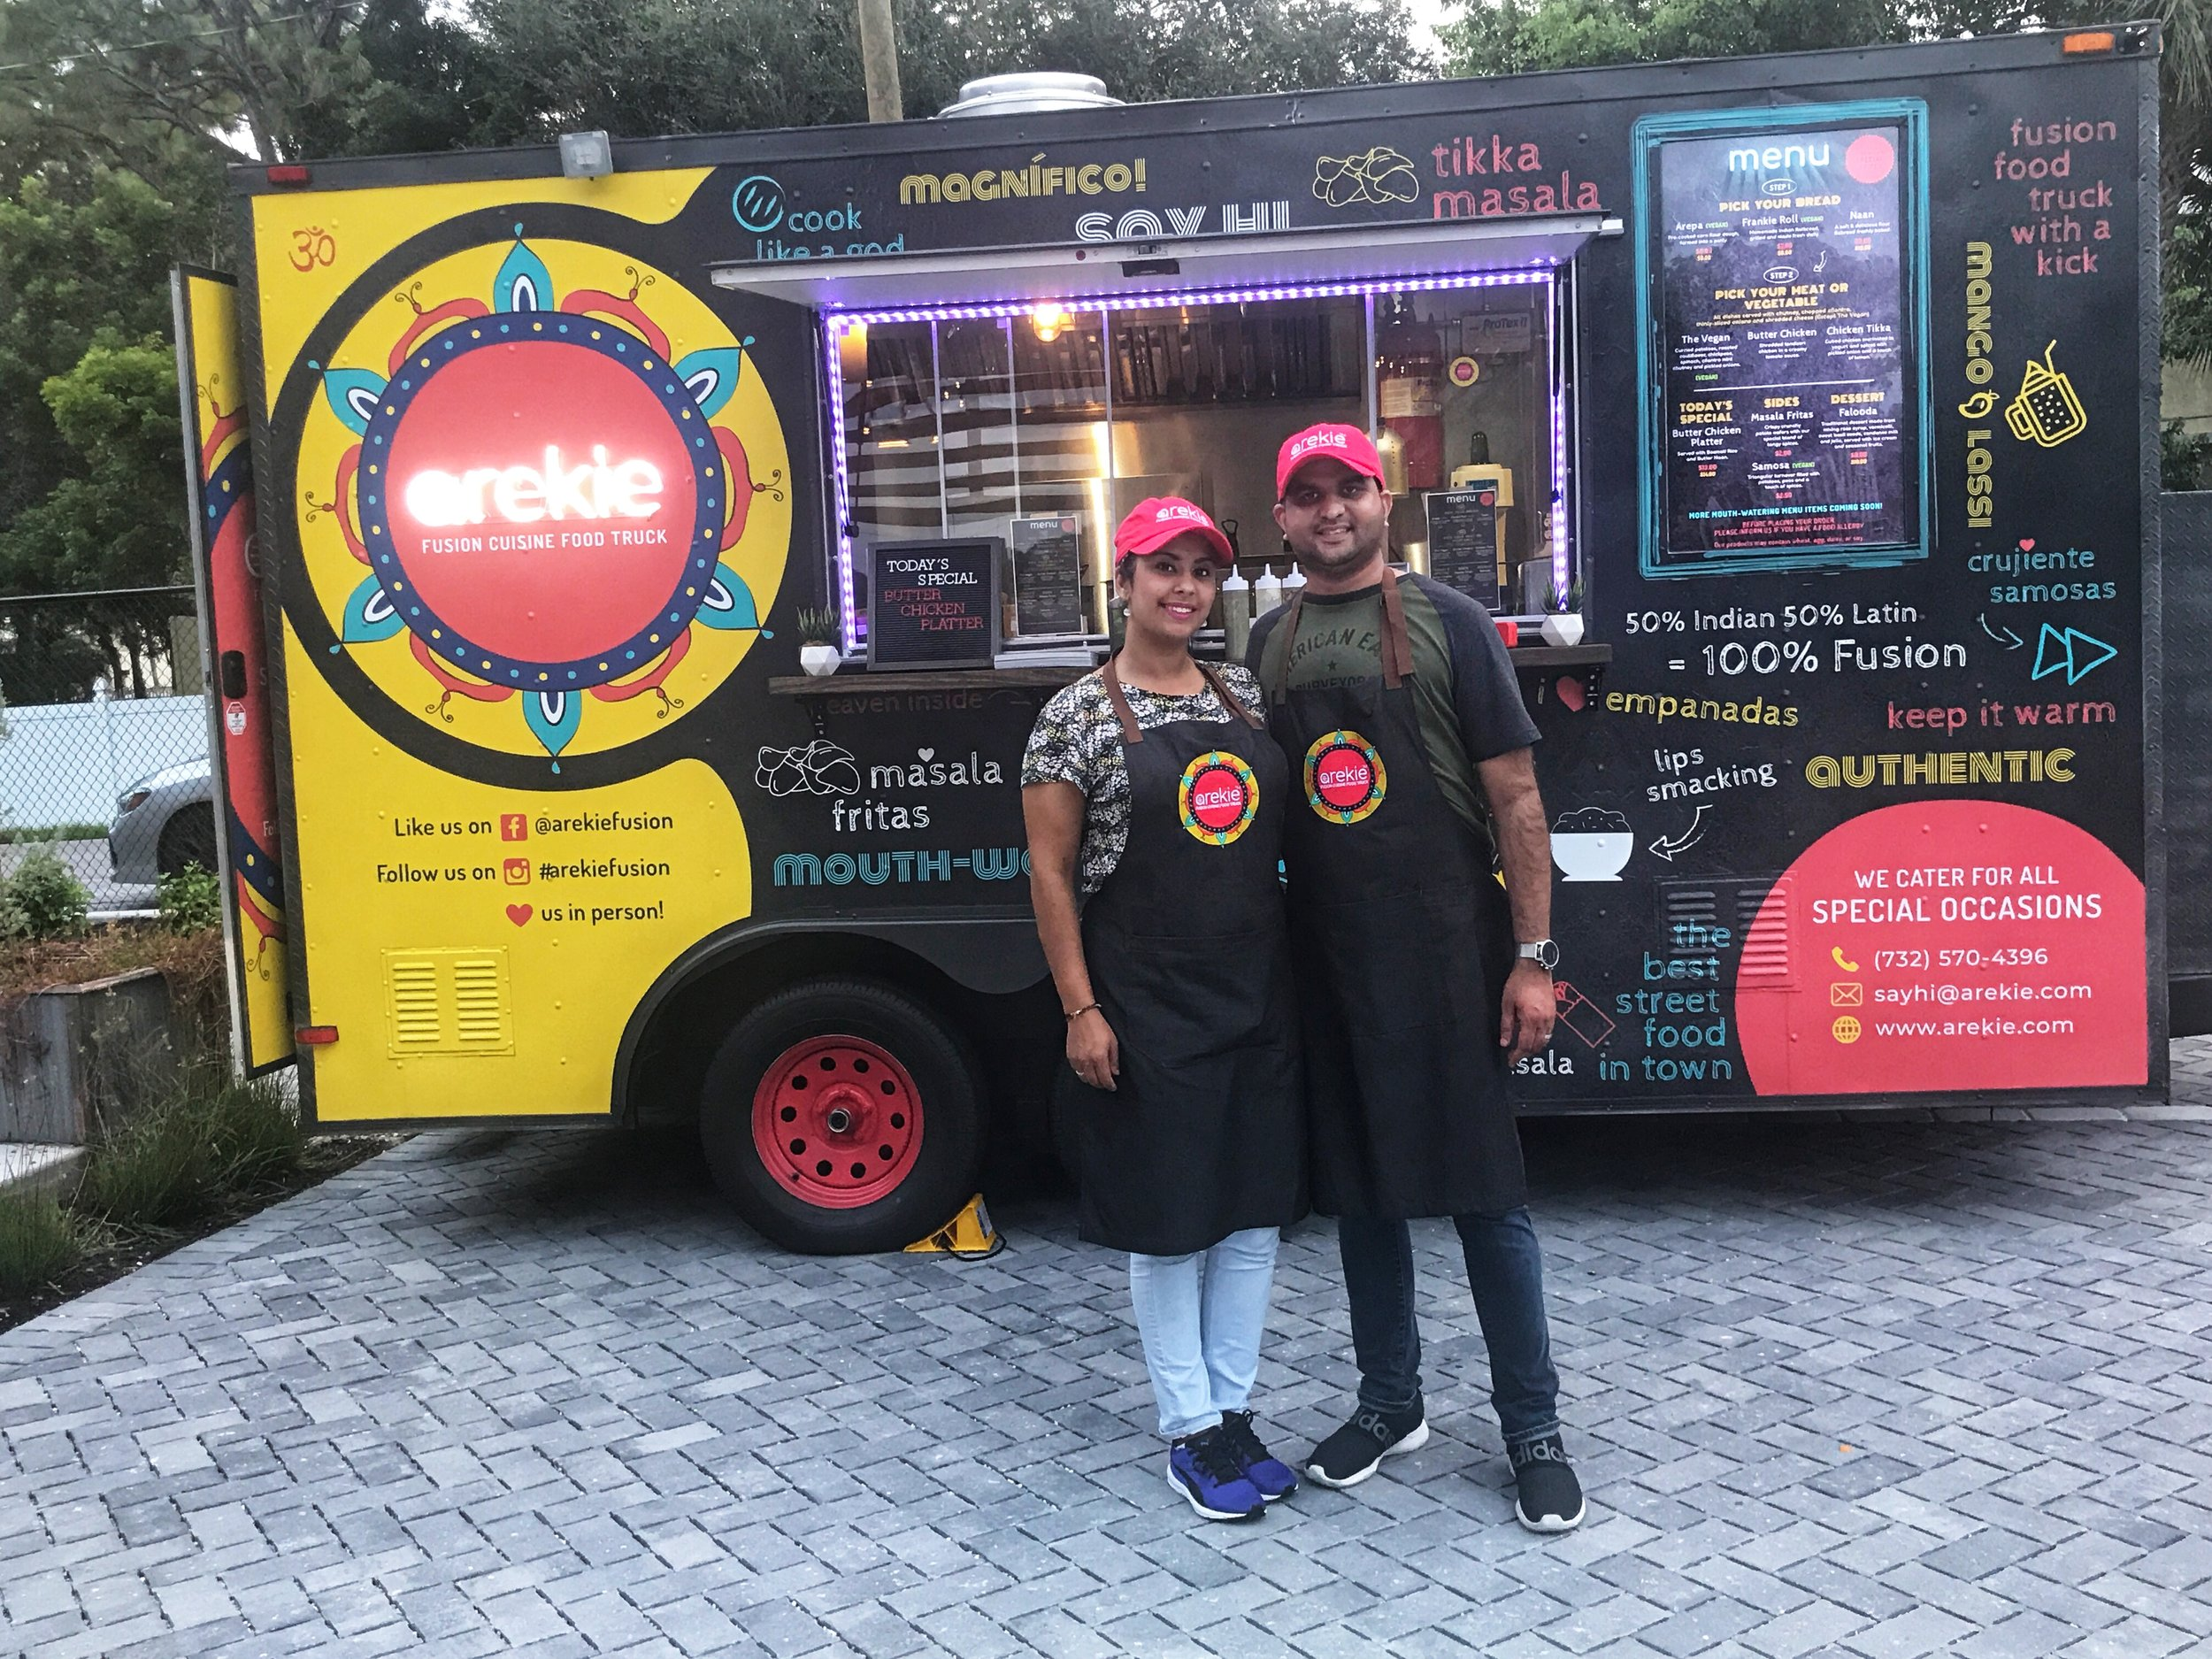 AREKIE - Latin/Indian Fusion Cuisine Food Truck operating in Southwest Florida. - Real Ingredients.Freshly Prepared.Every Day.